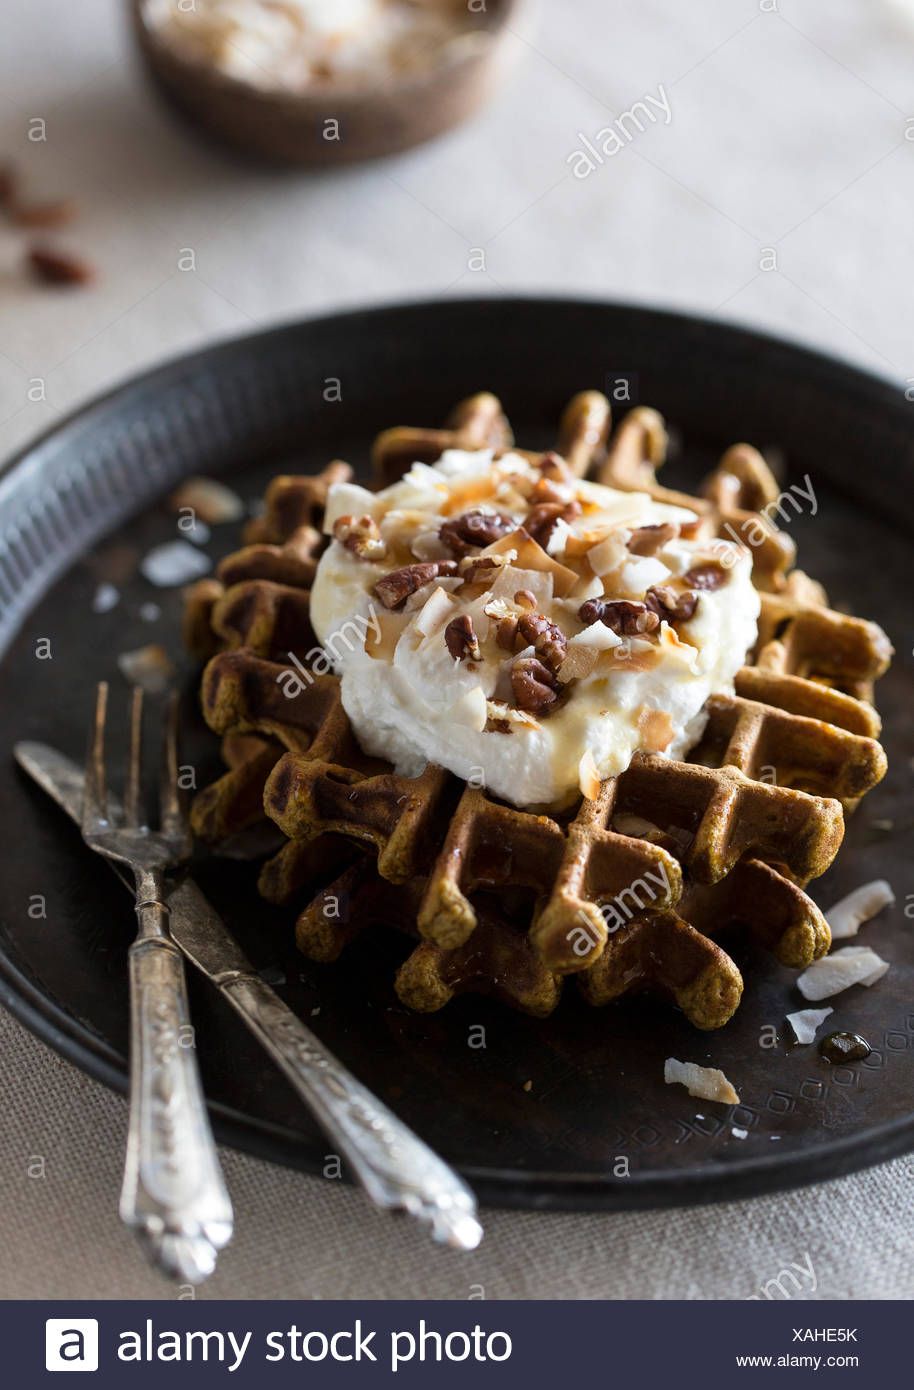 Spicy pumpkin waffles topped with coconut whipped cream, pecans, and maple syrup are photographed from the front. - Stock Image